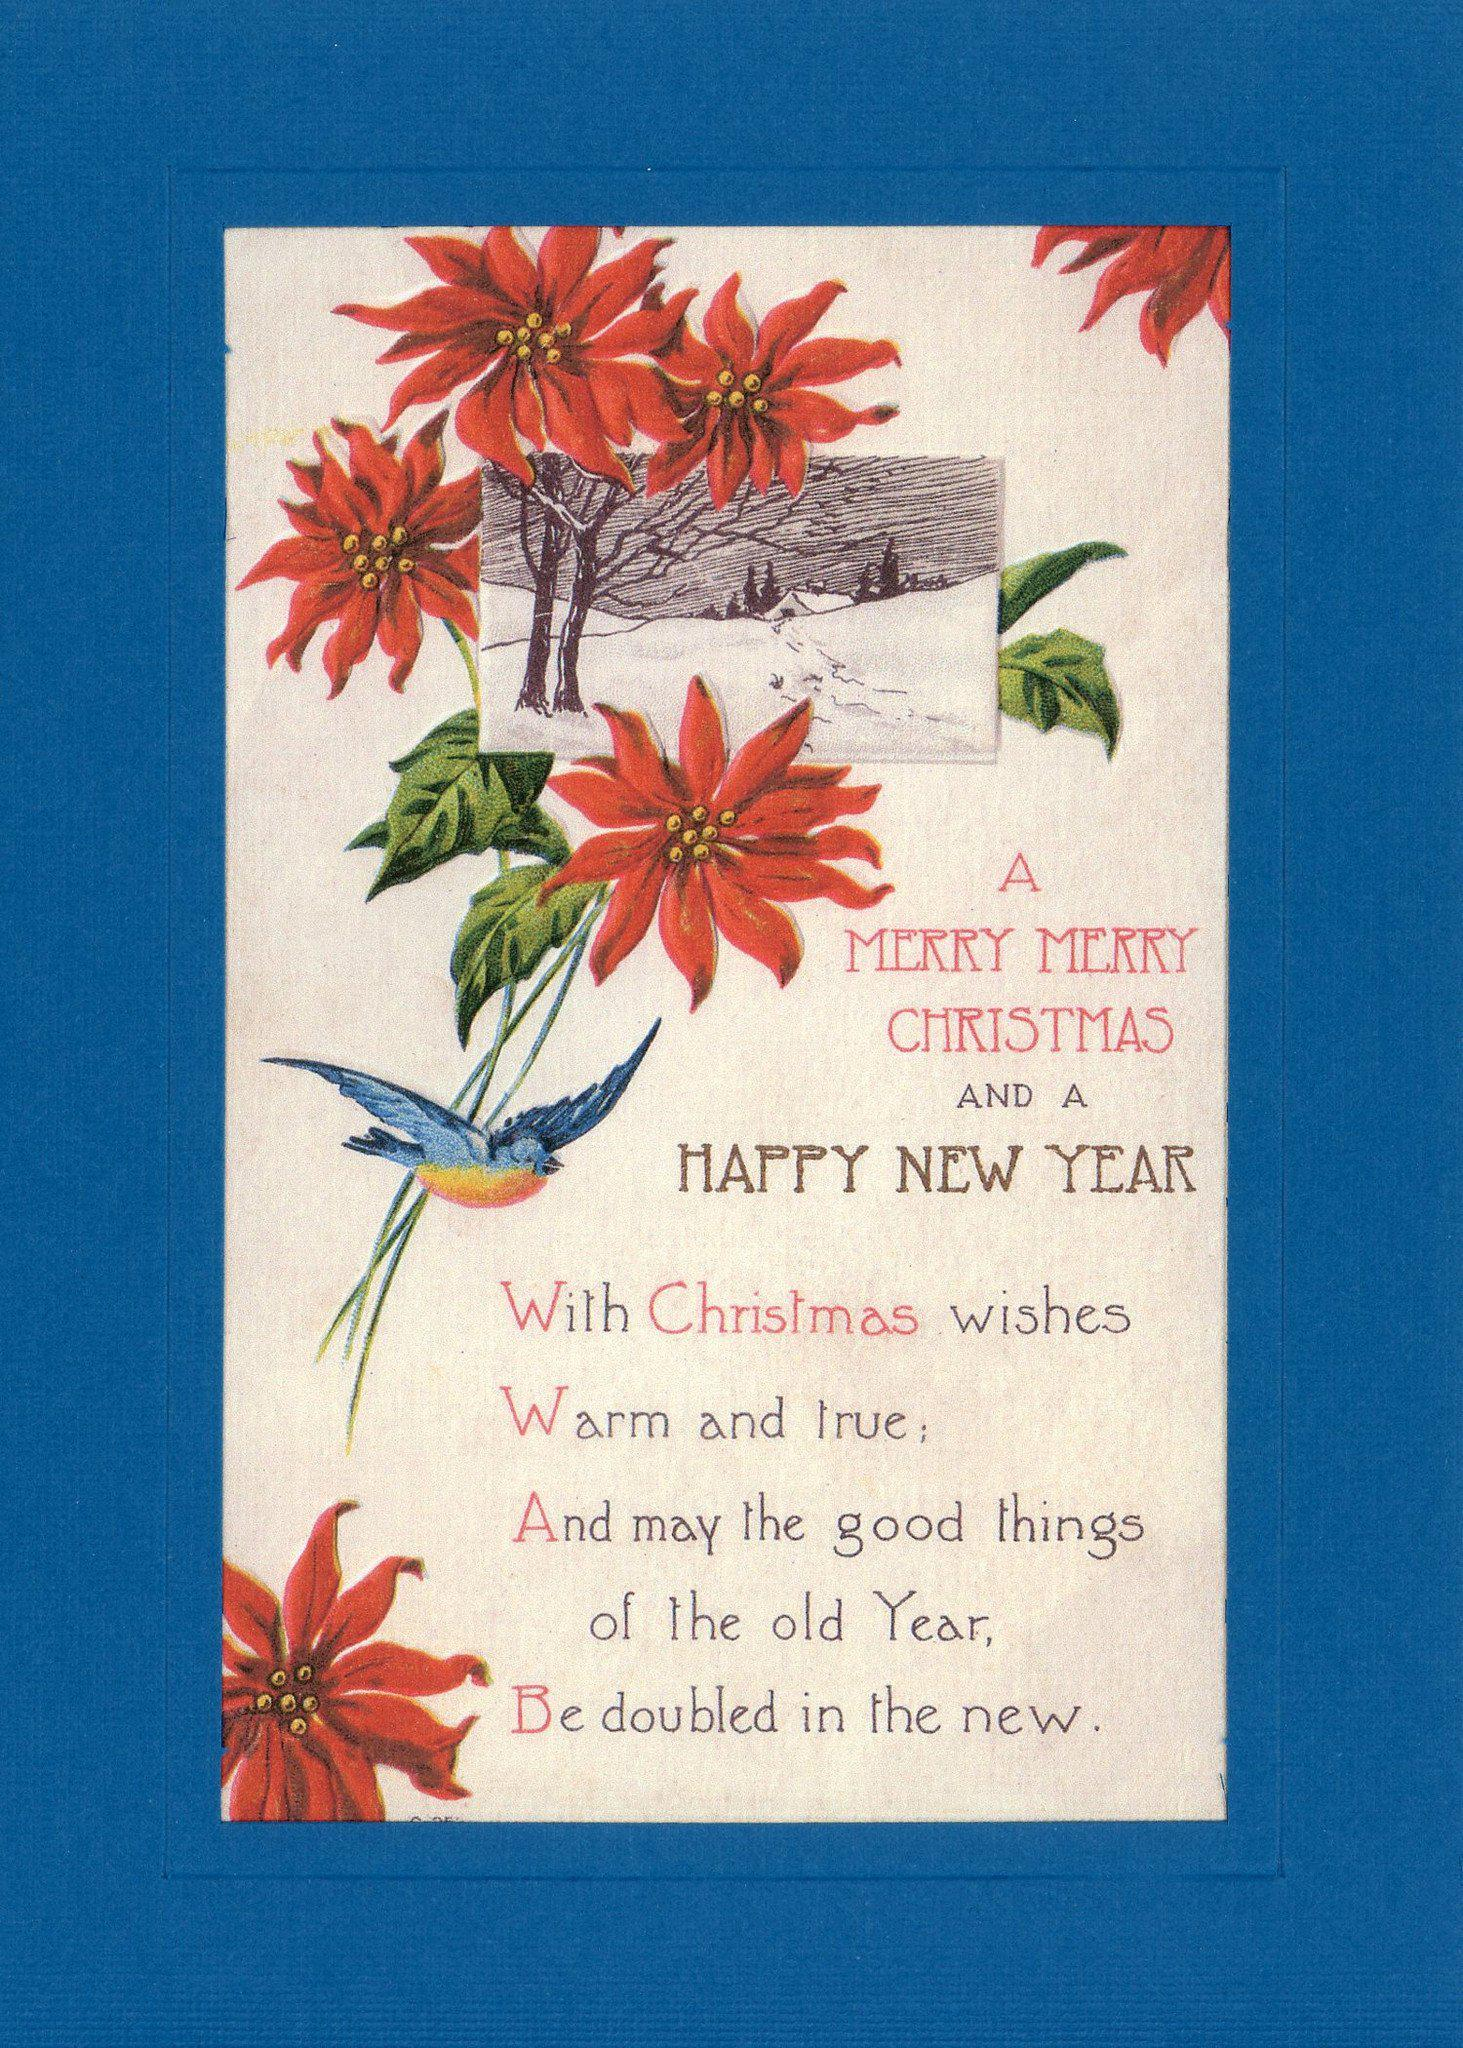 A Merry Merry Christmas and a Happy New Year-Greetings from the Past-Plymouth Cards